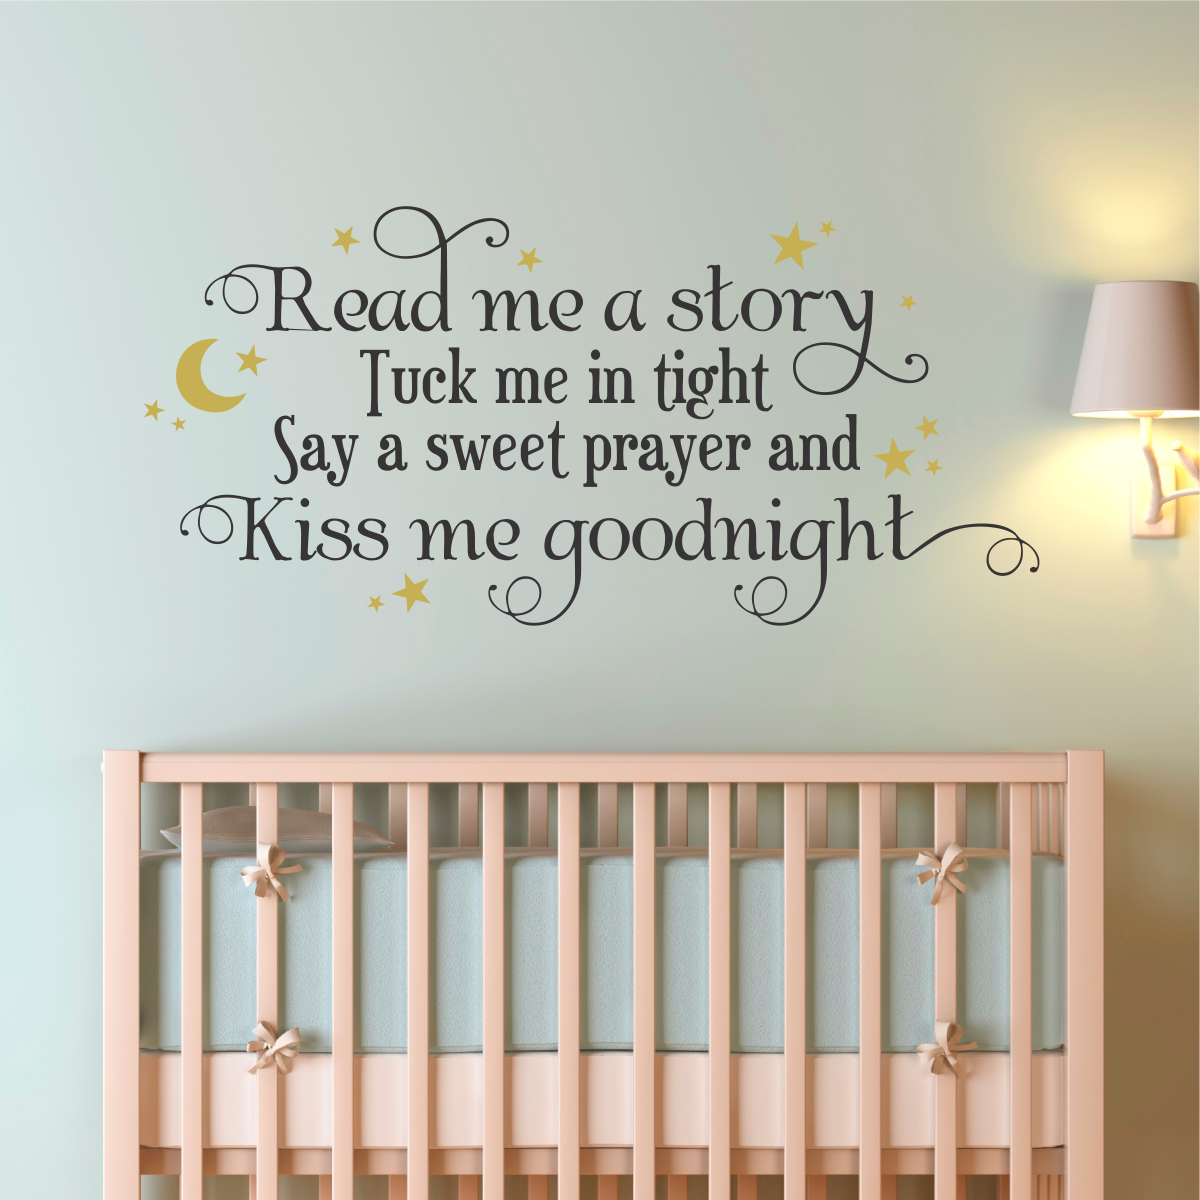 10 Great Baby Room Ideas For Parents To Use In Their: Belvedere Designs: Nursery Room Inspiration